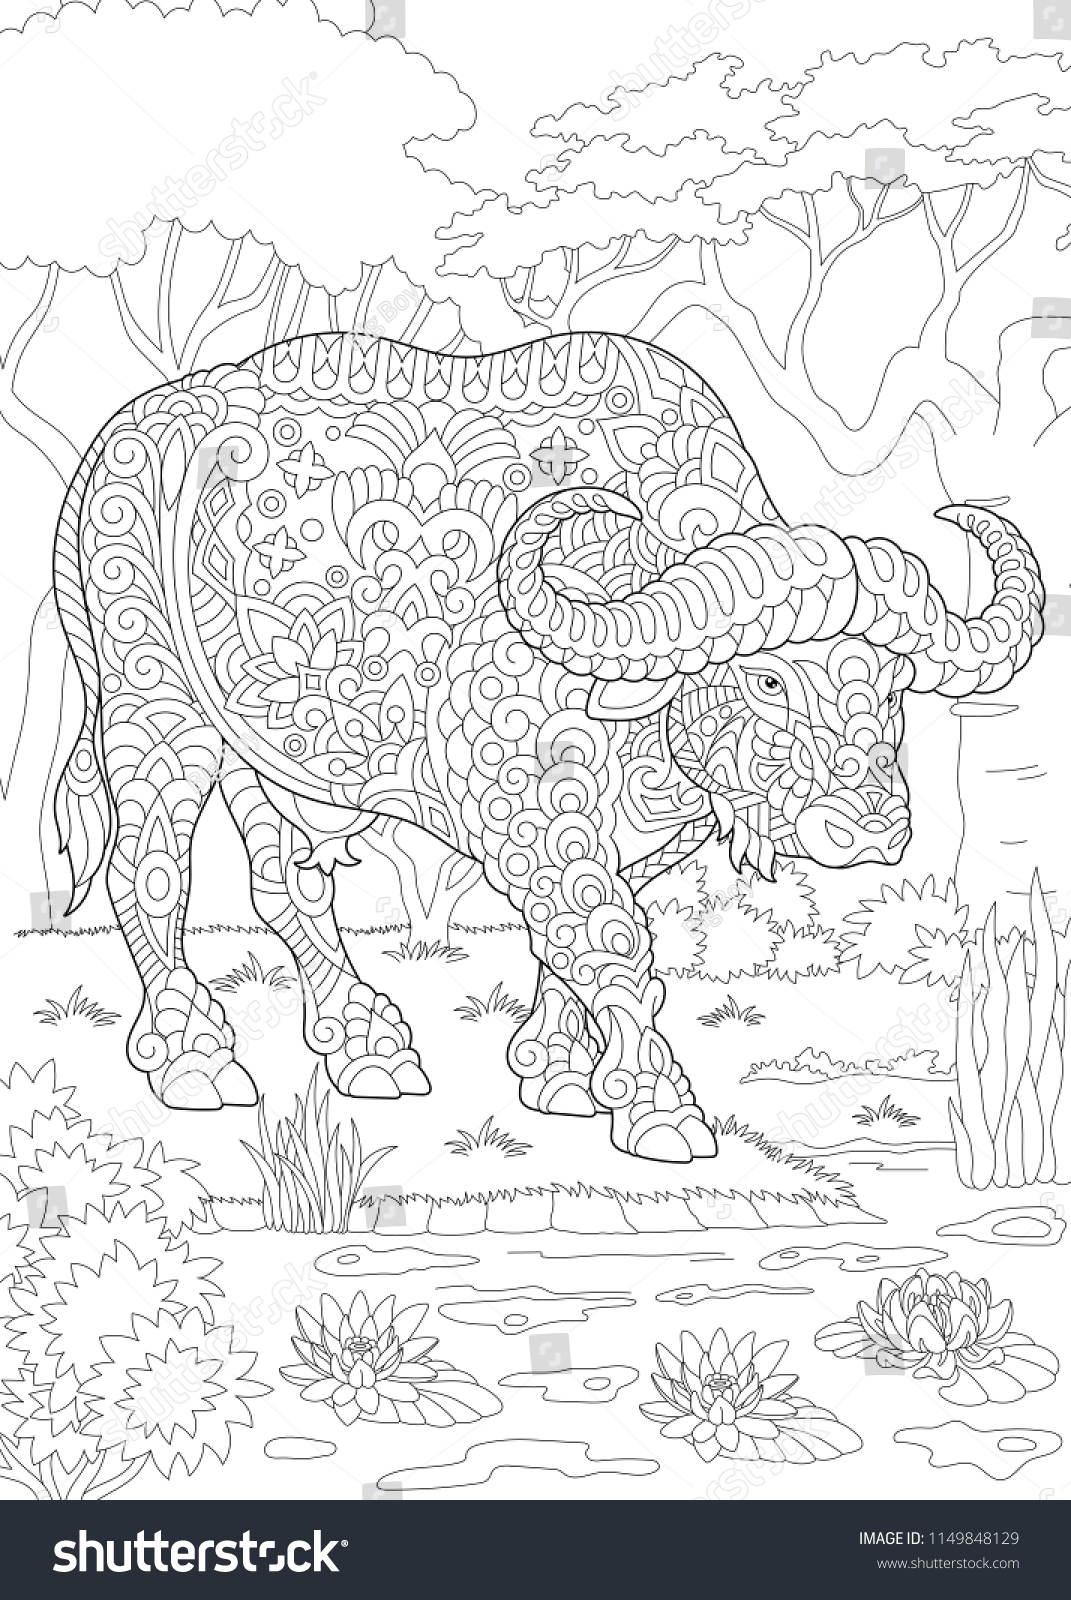 Coloring Page Coloring Book Colouring Picture Stock Vector (Royalty ...